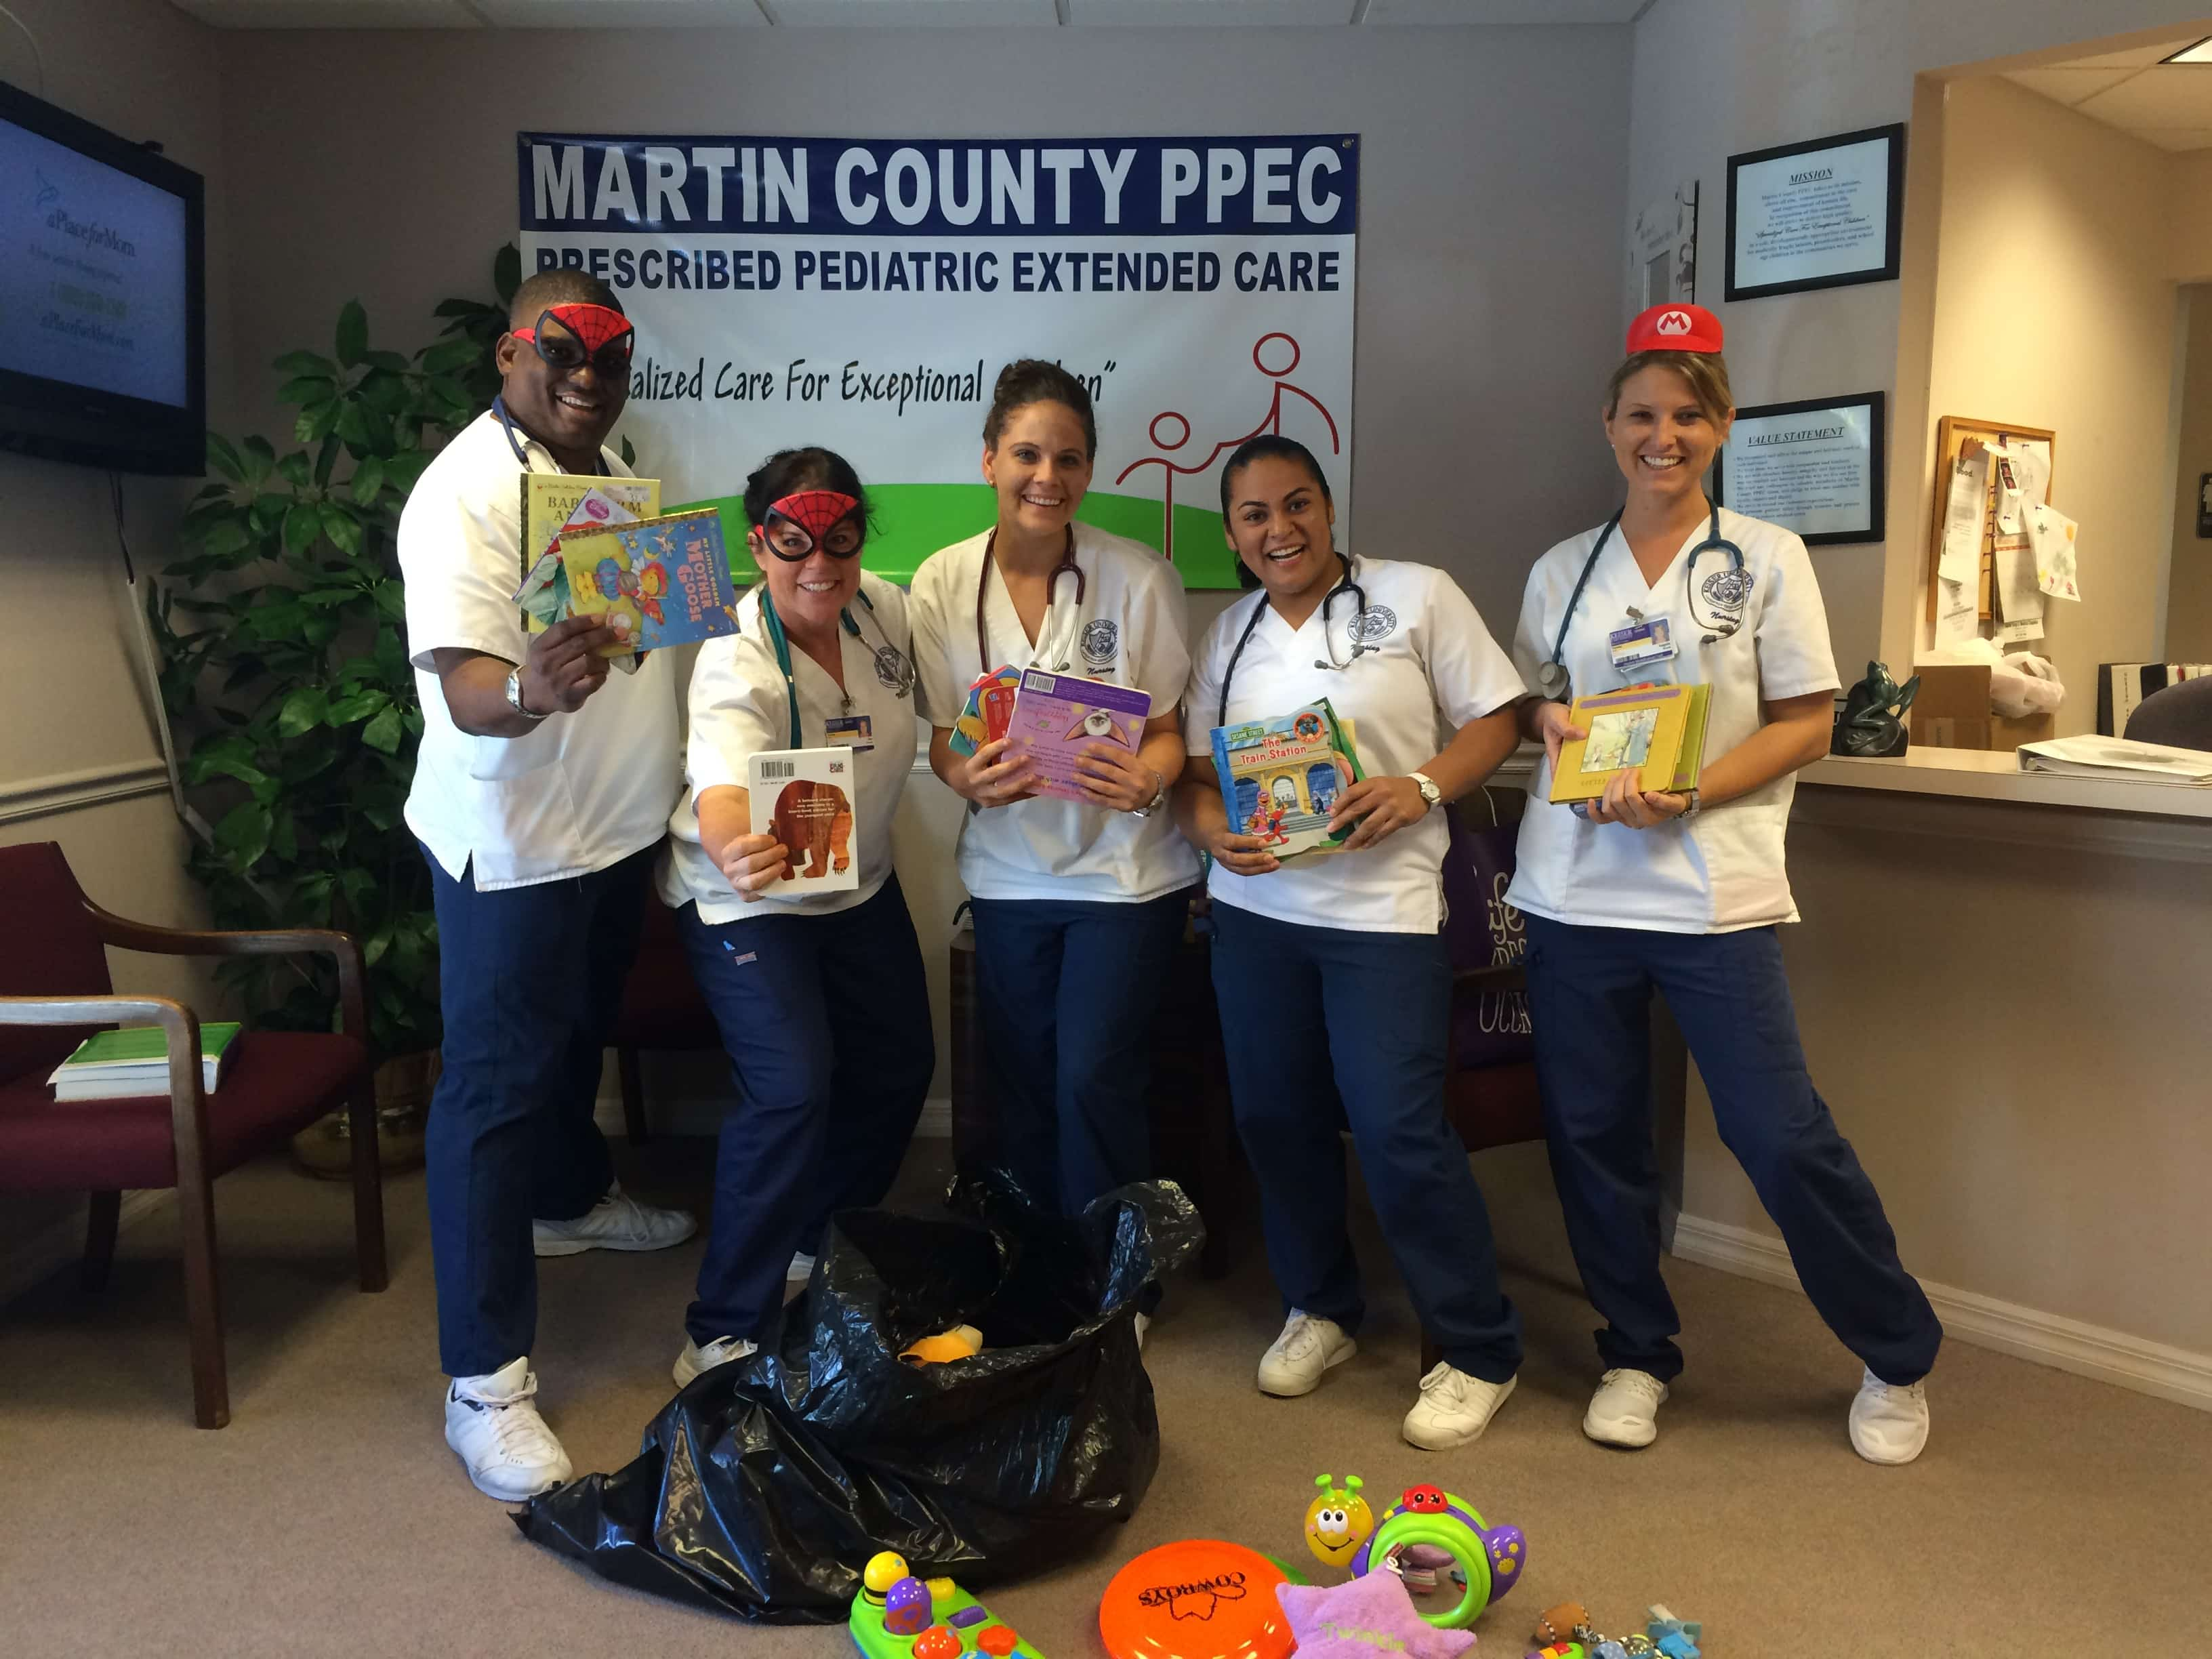 Nursing Students in Port St. Lucie Donate Toys and Books to the Martin County PPEC